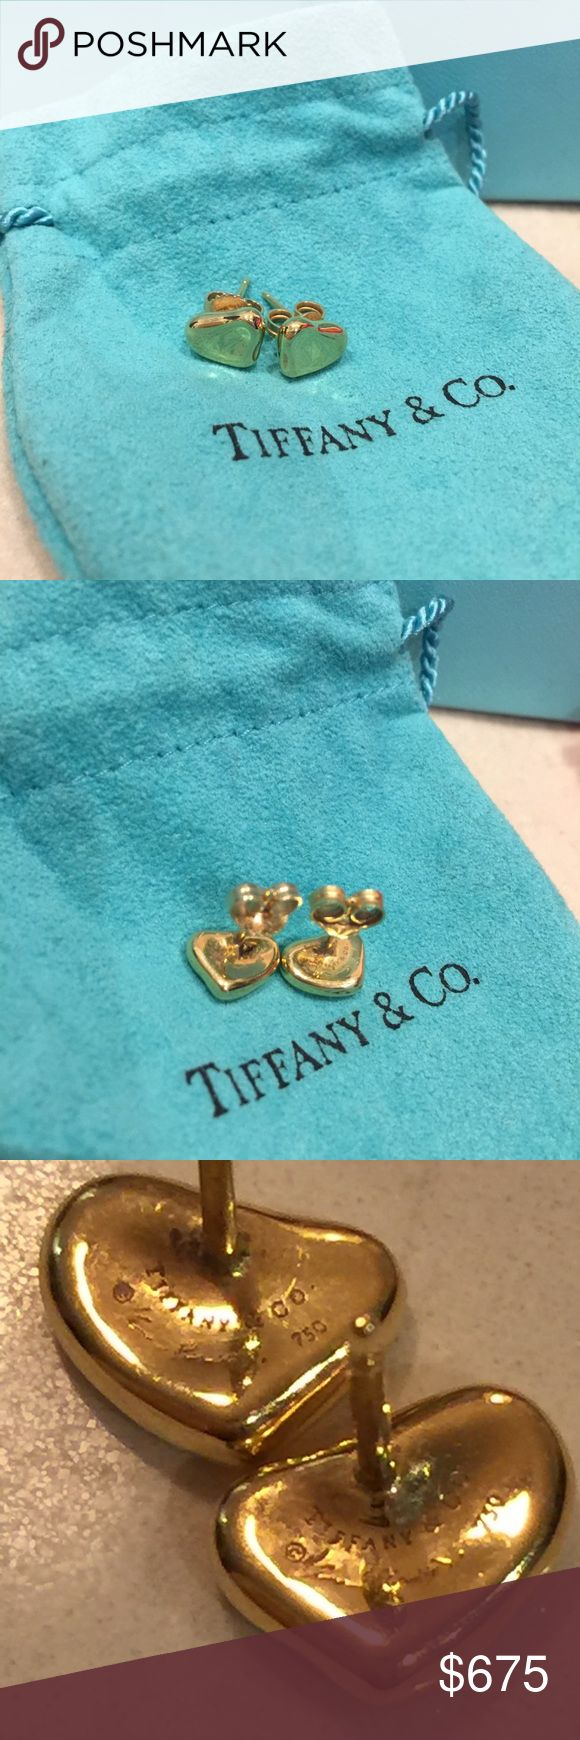 Authentic Elsa Peretti Full Contour Heart Earrings Authentic Elsa Peretti Full Contour Heart Earrings. 18K Yellow Gold. Branded 750. Purchased at Tiffany & Co. Boutique on Fifth Avenue in NYC more than 10 Years Ago. Very Faint Wear. Very Good Condition. Handled With Care. No Receipt. Original Owner. Comes With Pictured Tiffany Blue Box, Dustbag and Tiffany Blue Bag. Can't Find White Ribbon or Velvet Box. BEAUTIFUL!✨✨Reasonable Offers Considered. Matching Pendant Necklace Also Available in…